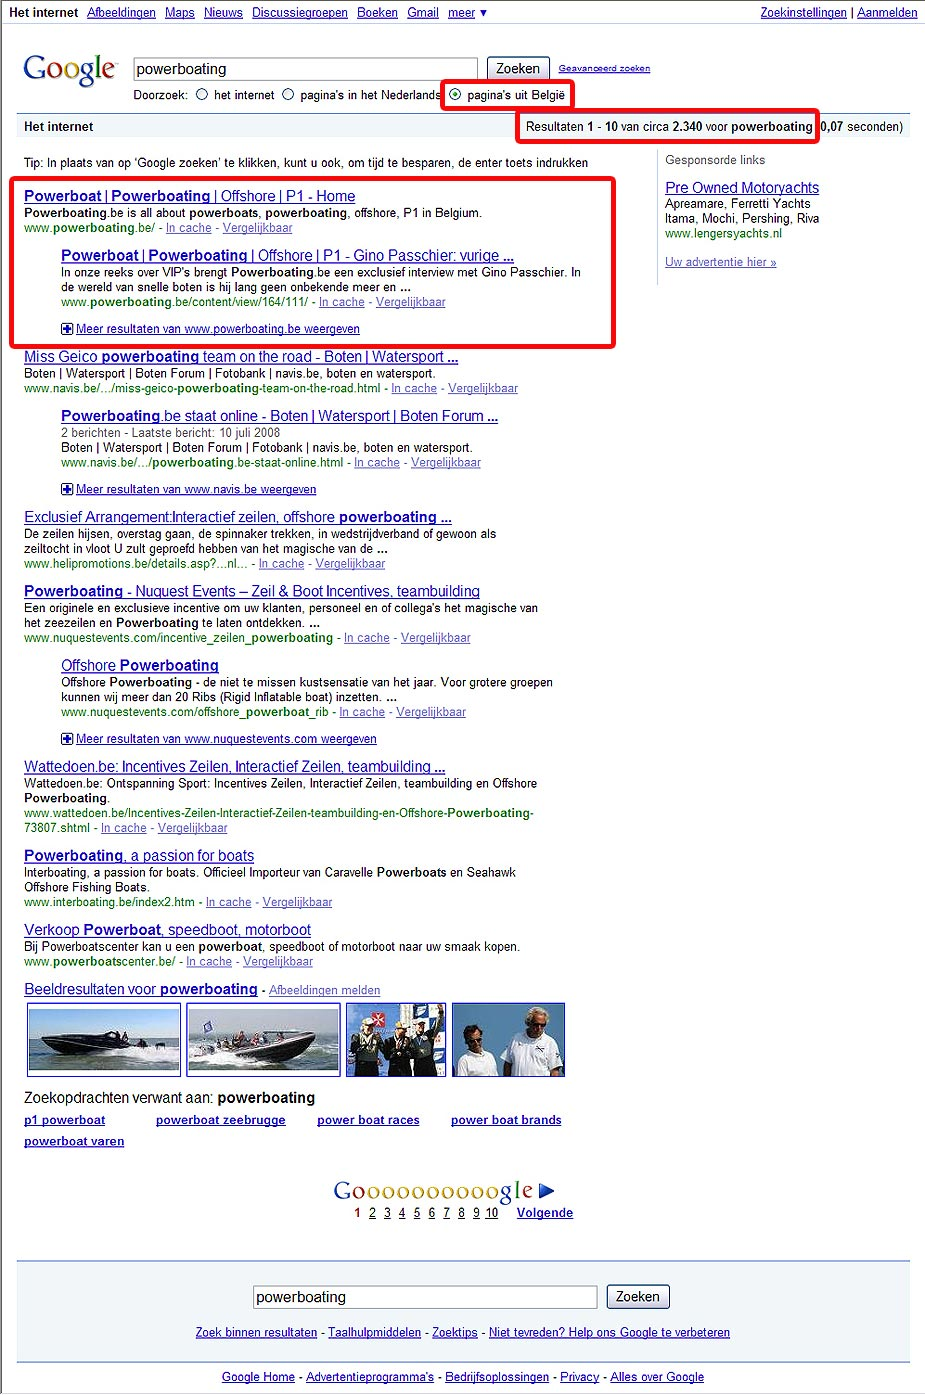 powerboating in Google - België - 1 november 2009